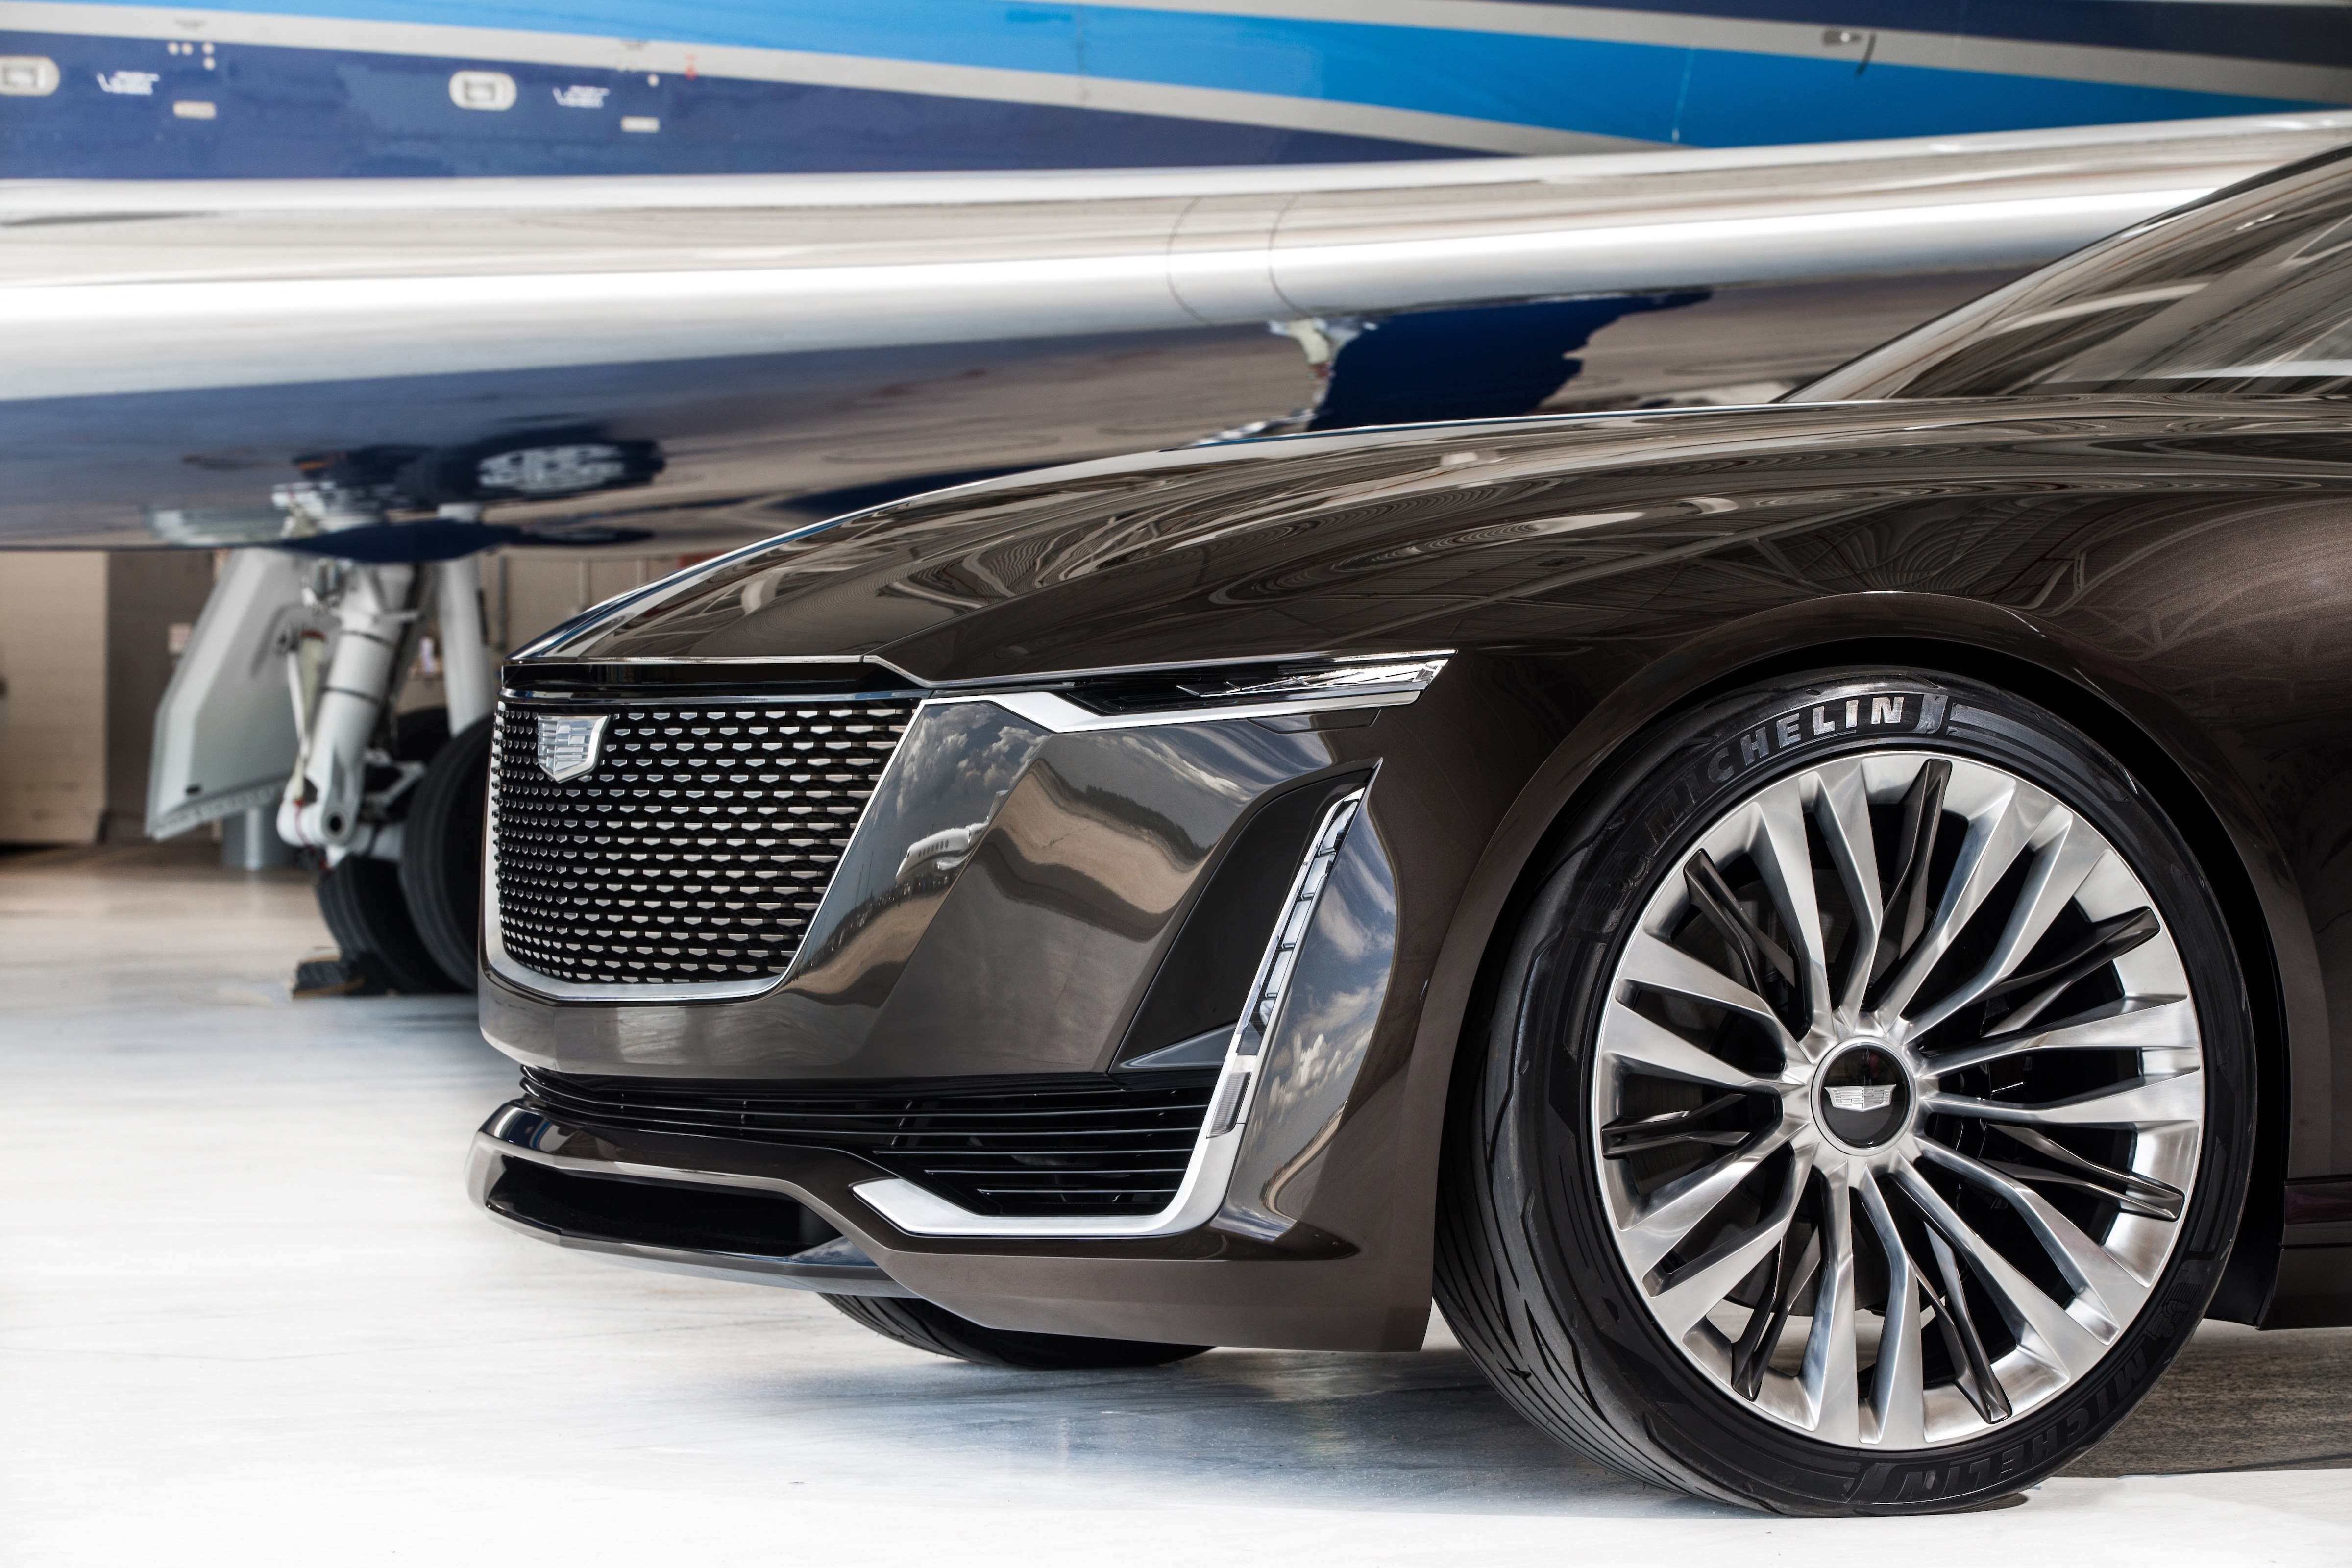 42 All New 2020 Cadillac Fleetwood Series 75 Speed Test